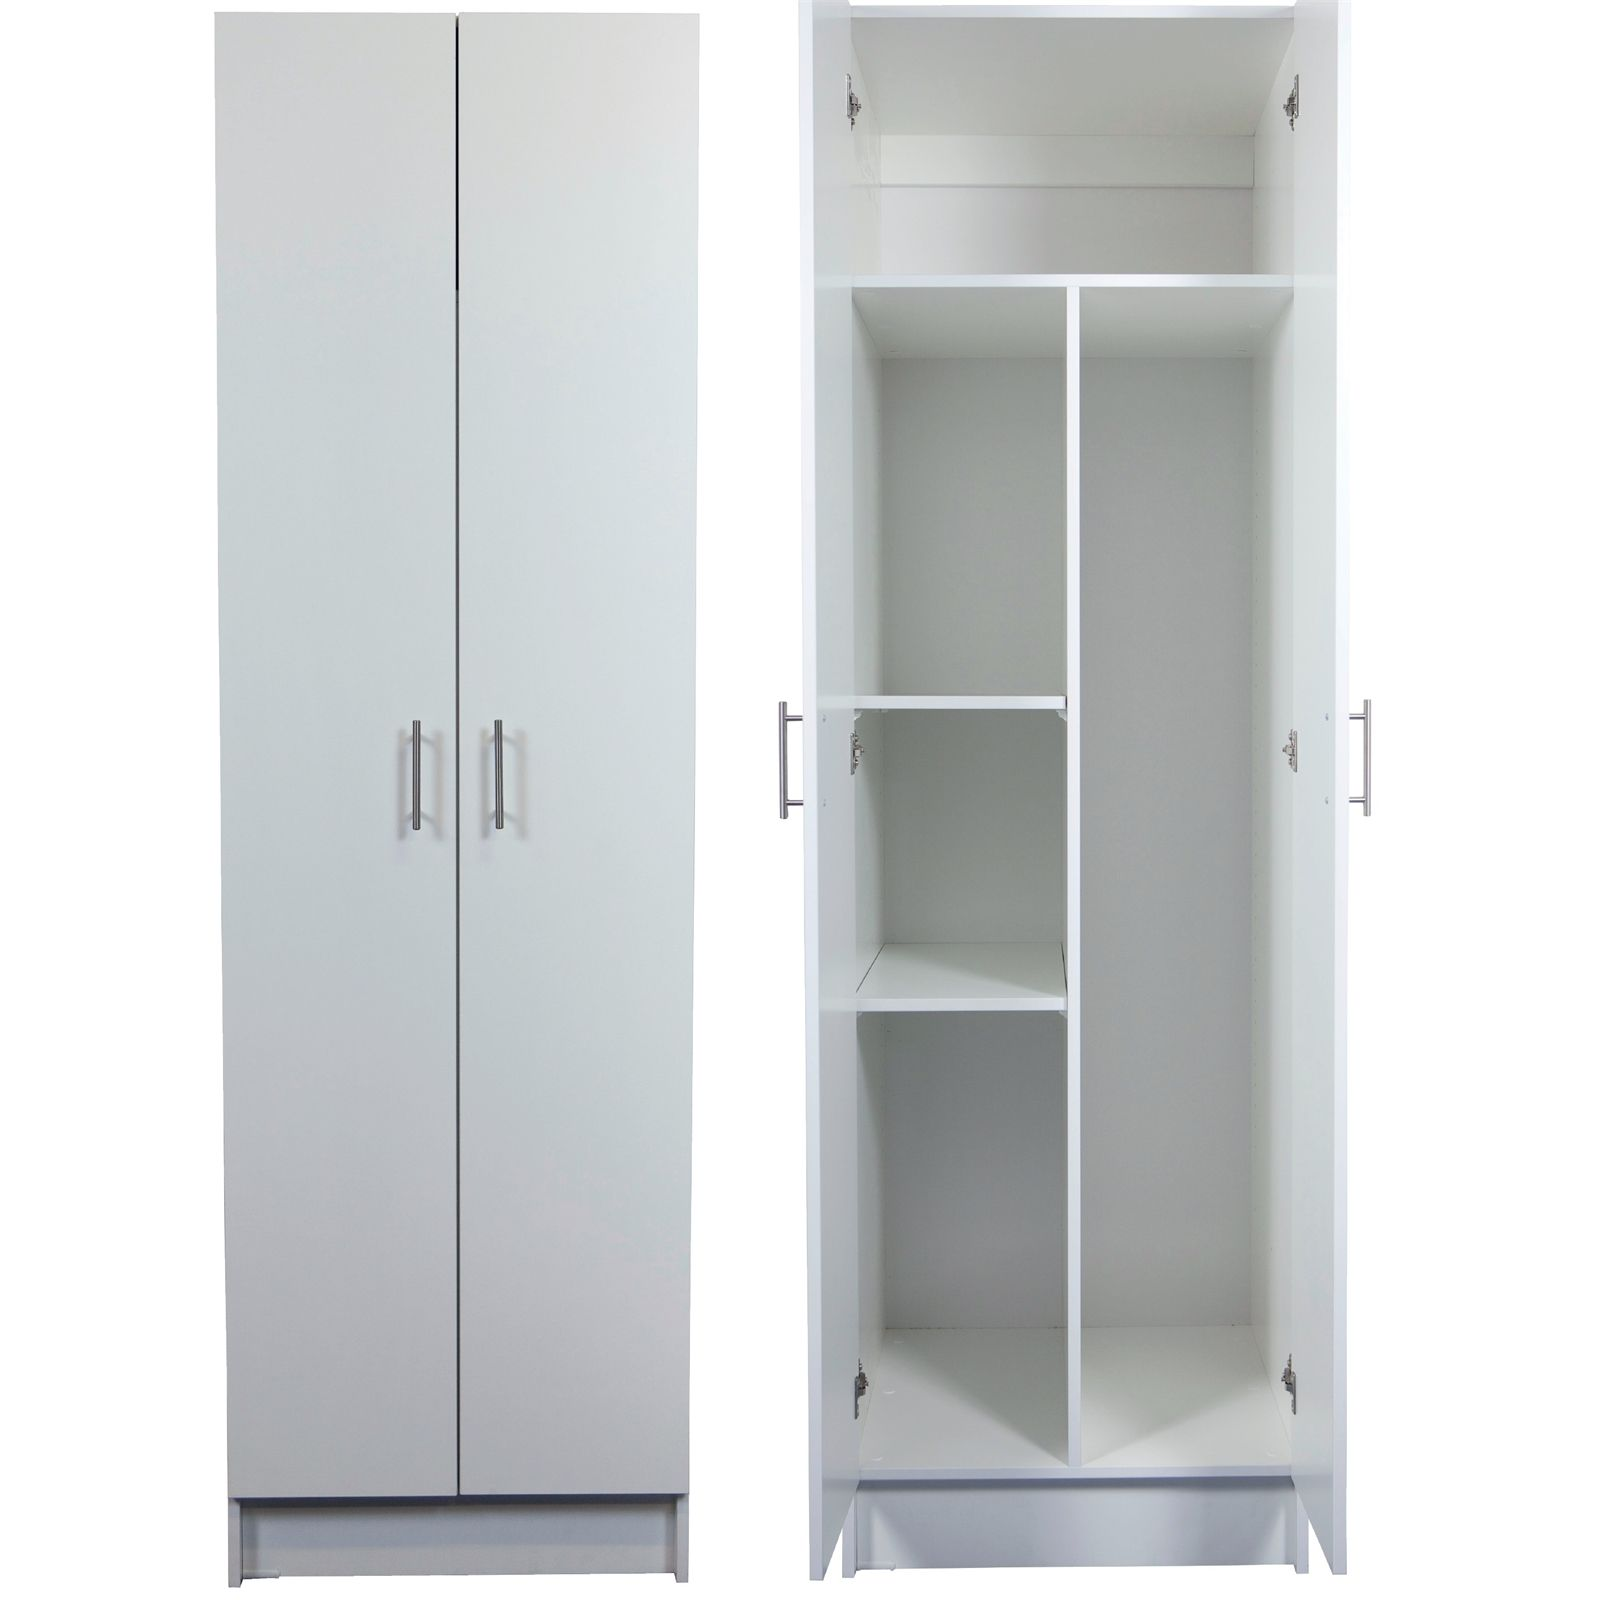 Find Bedford 2000 X 600 600mm 2 Door Hmr Split Cabinet At Bunnings Warehouse Visit Your Local For The Widest Range Of Storage Cleaning Products